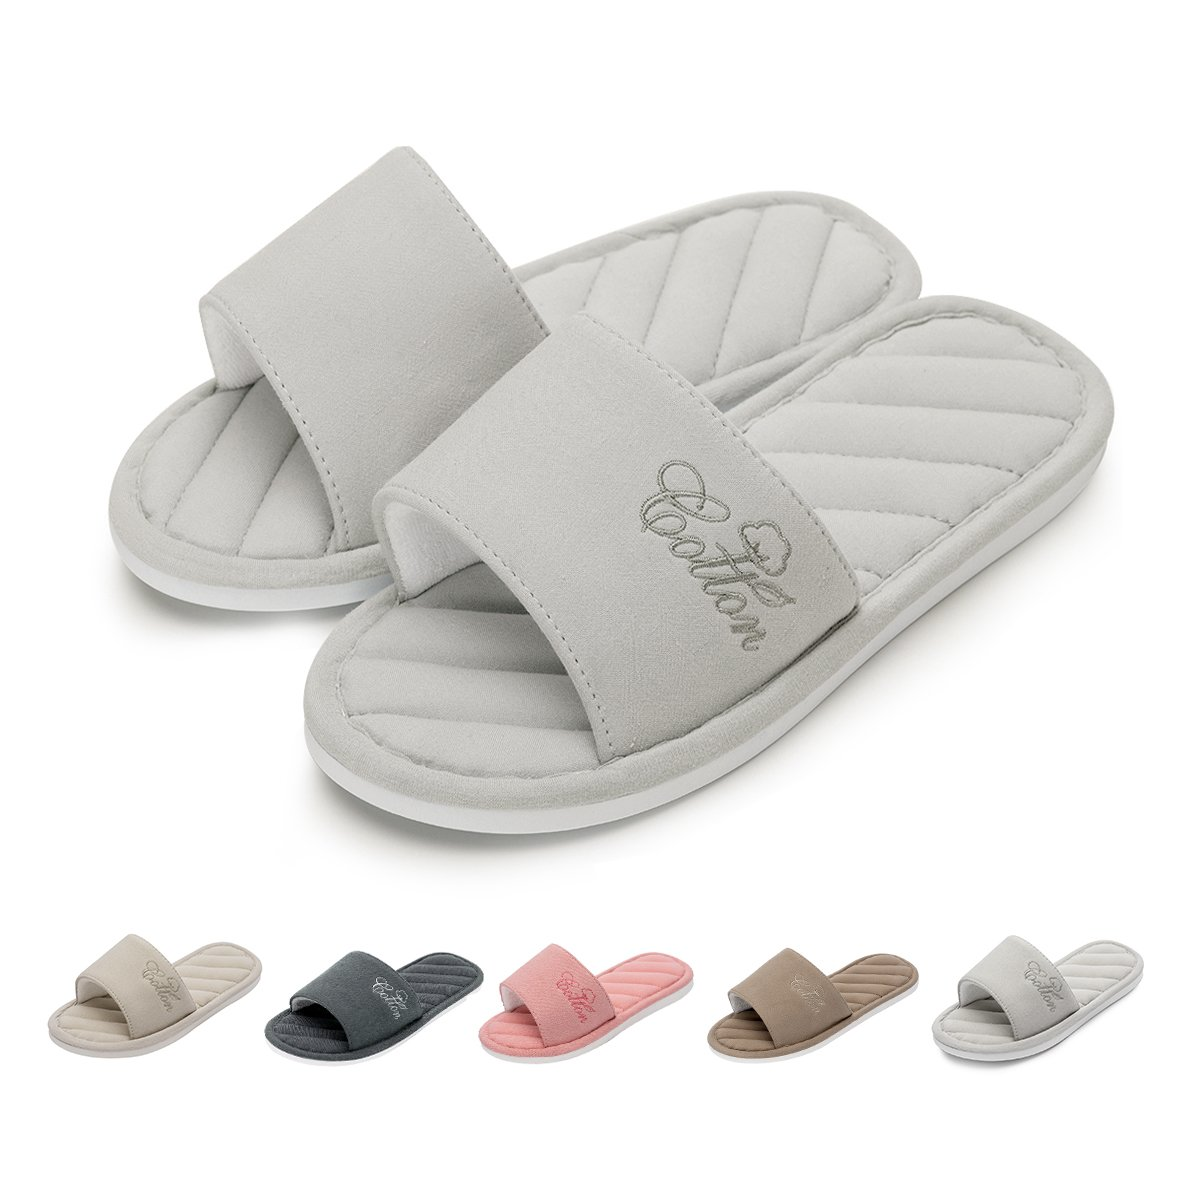 Caramella Bubble OpenToeKnitted CottonSlippers| SliponMemory Foam CoupleSlippers| Anti-Slip Indoor Outdoor HouseSlippers (5.5-6.5, Light Grey)